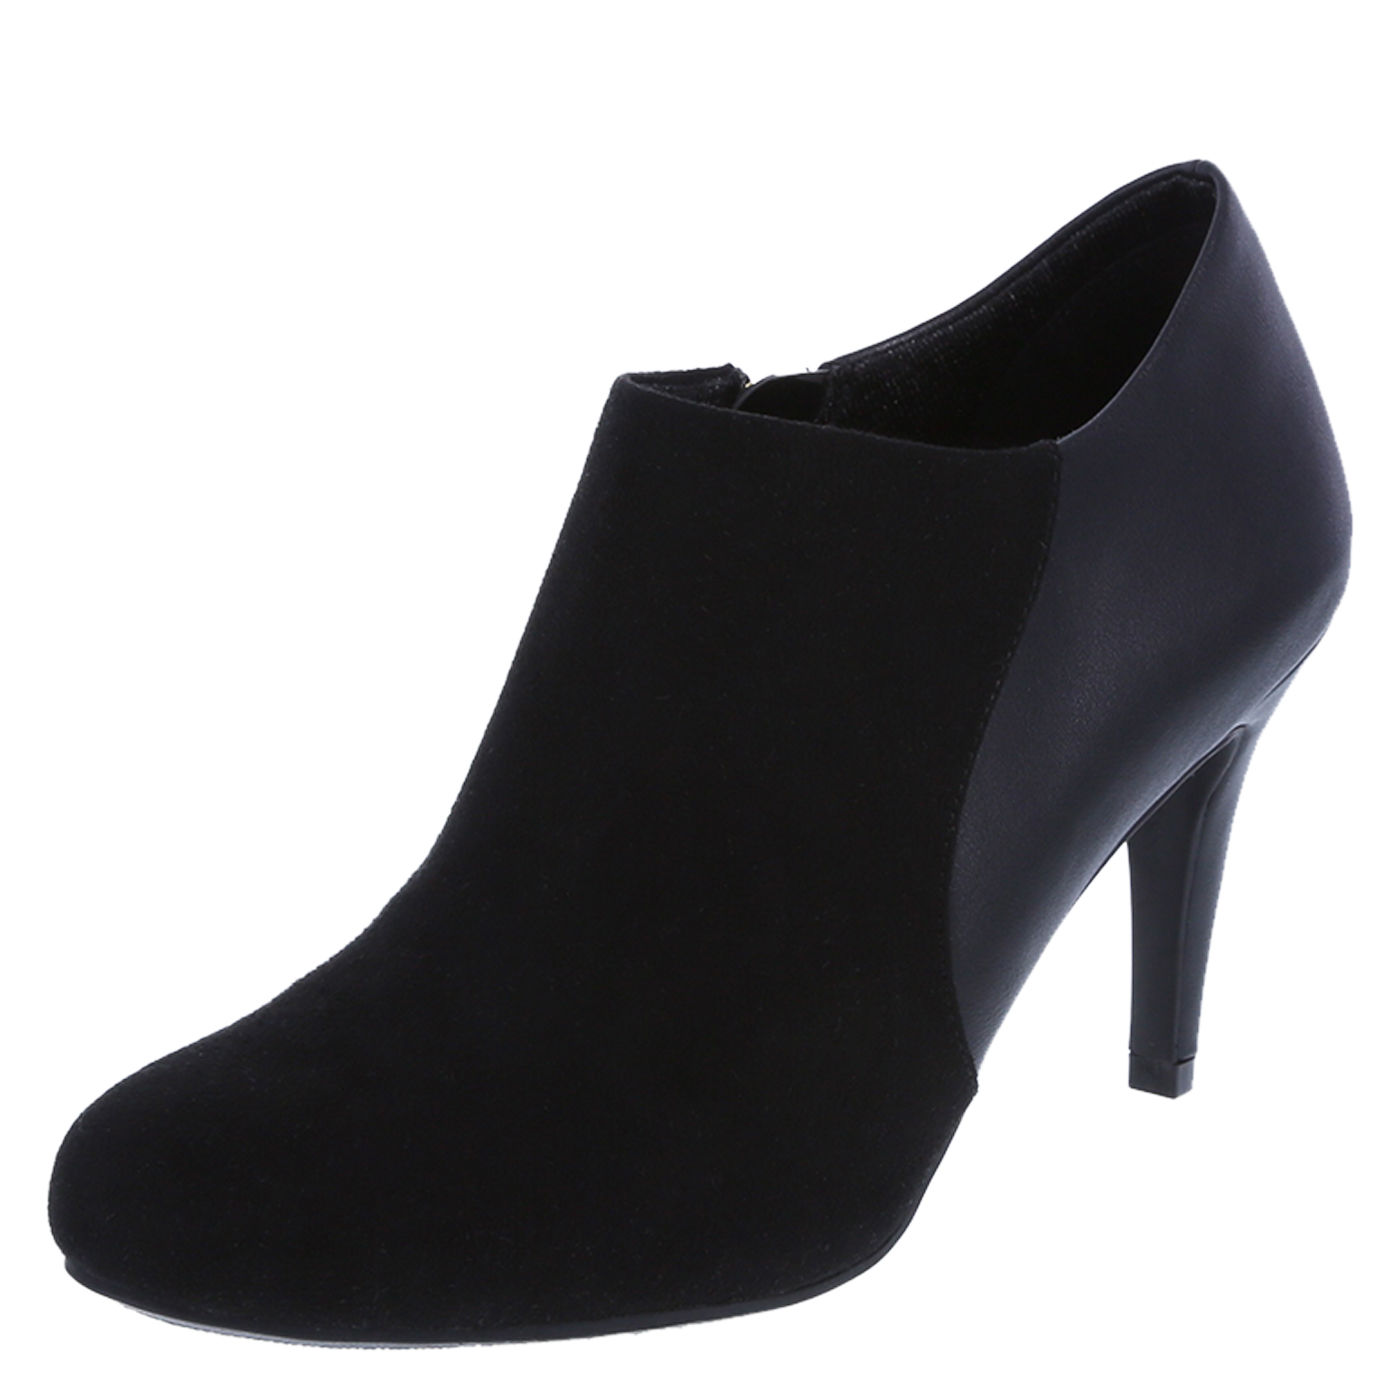 Payless Dress Shoes